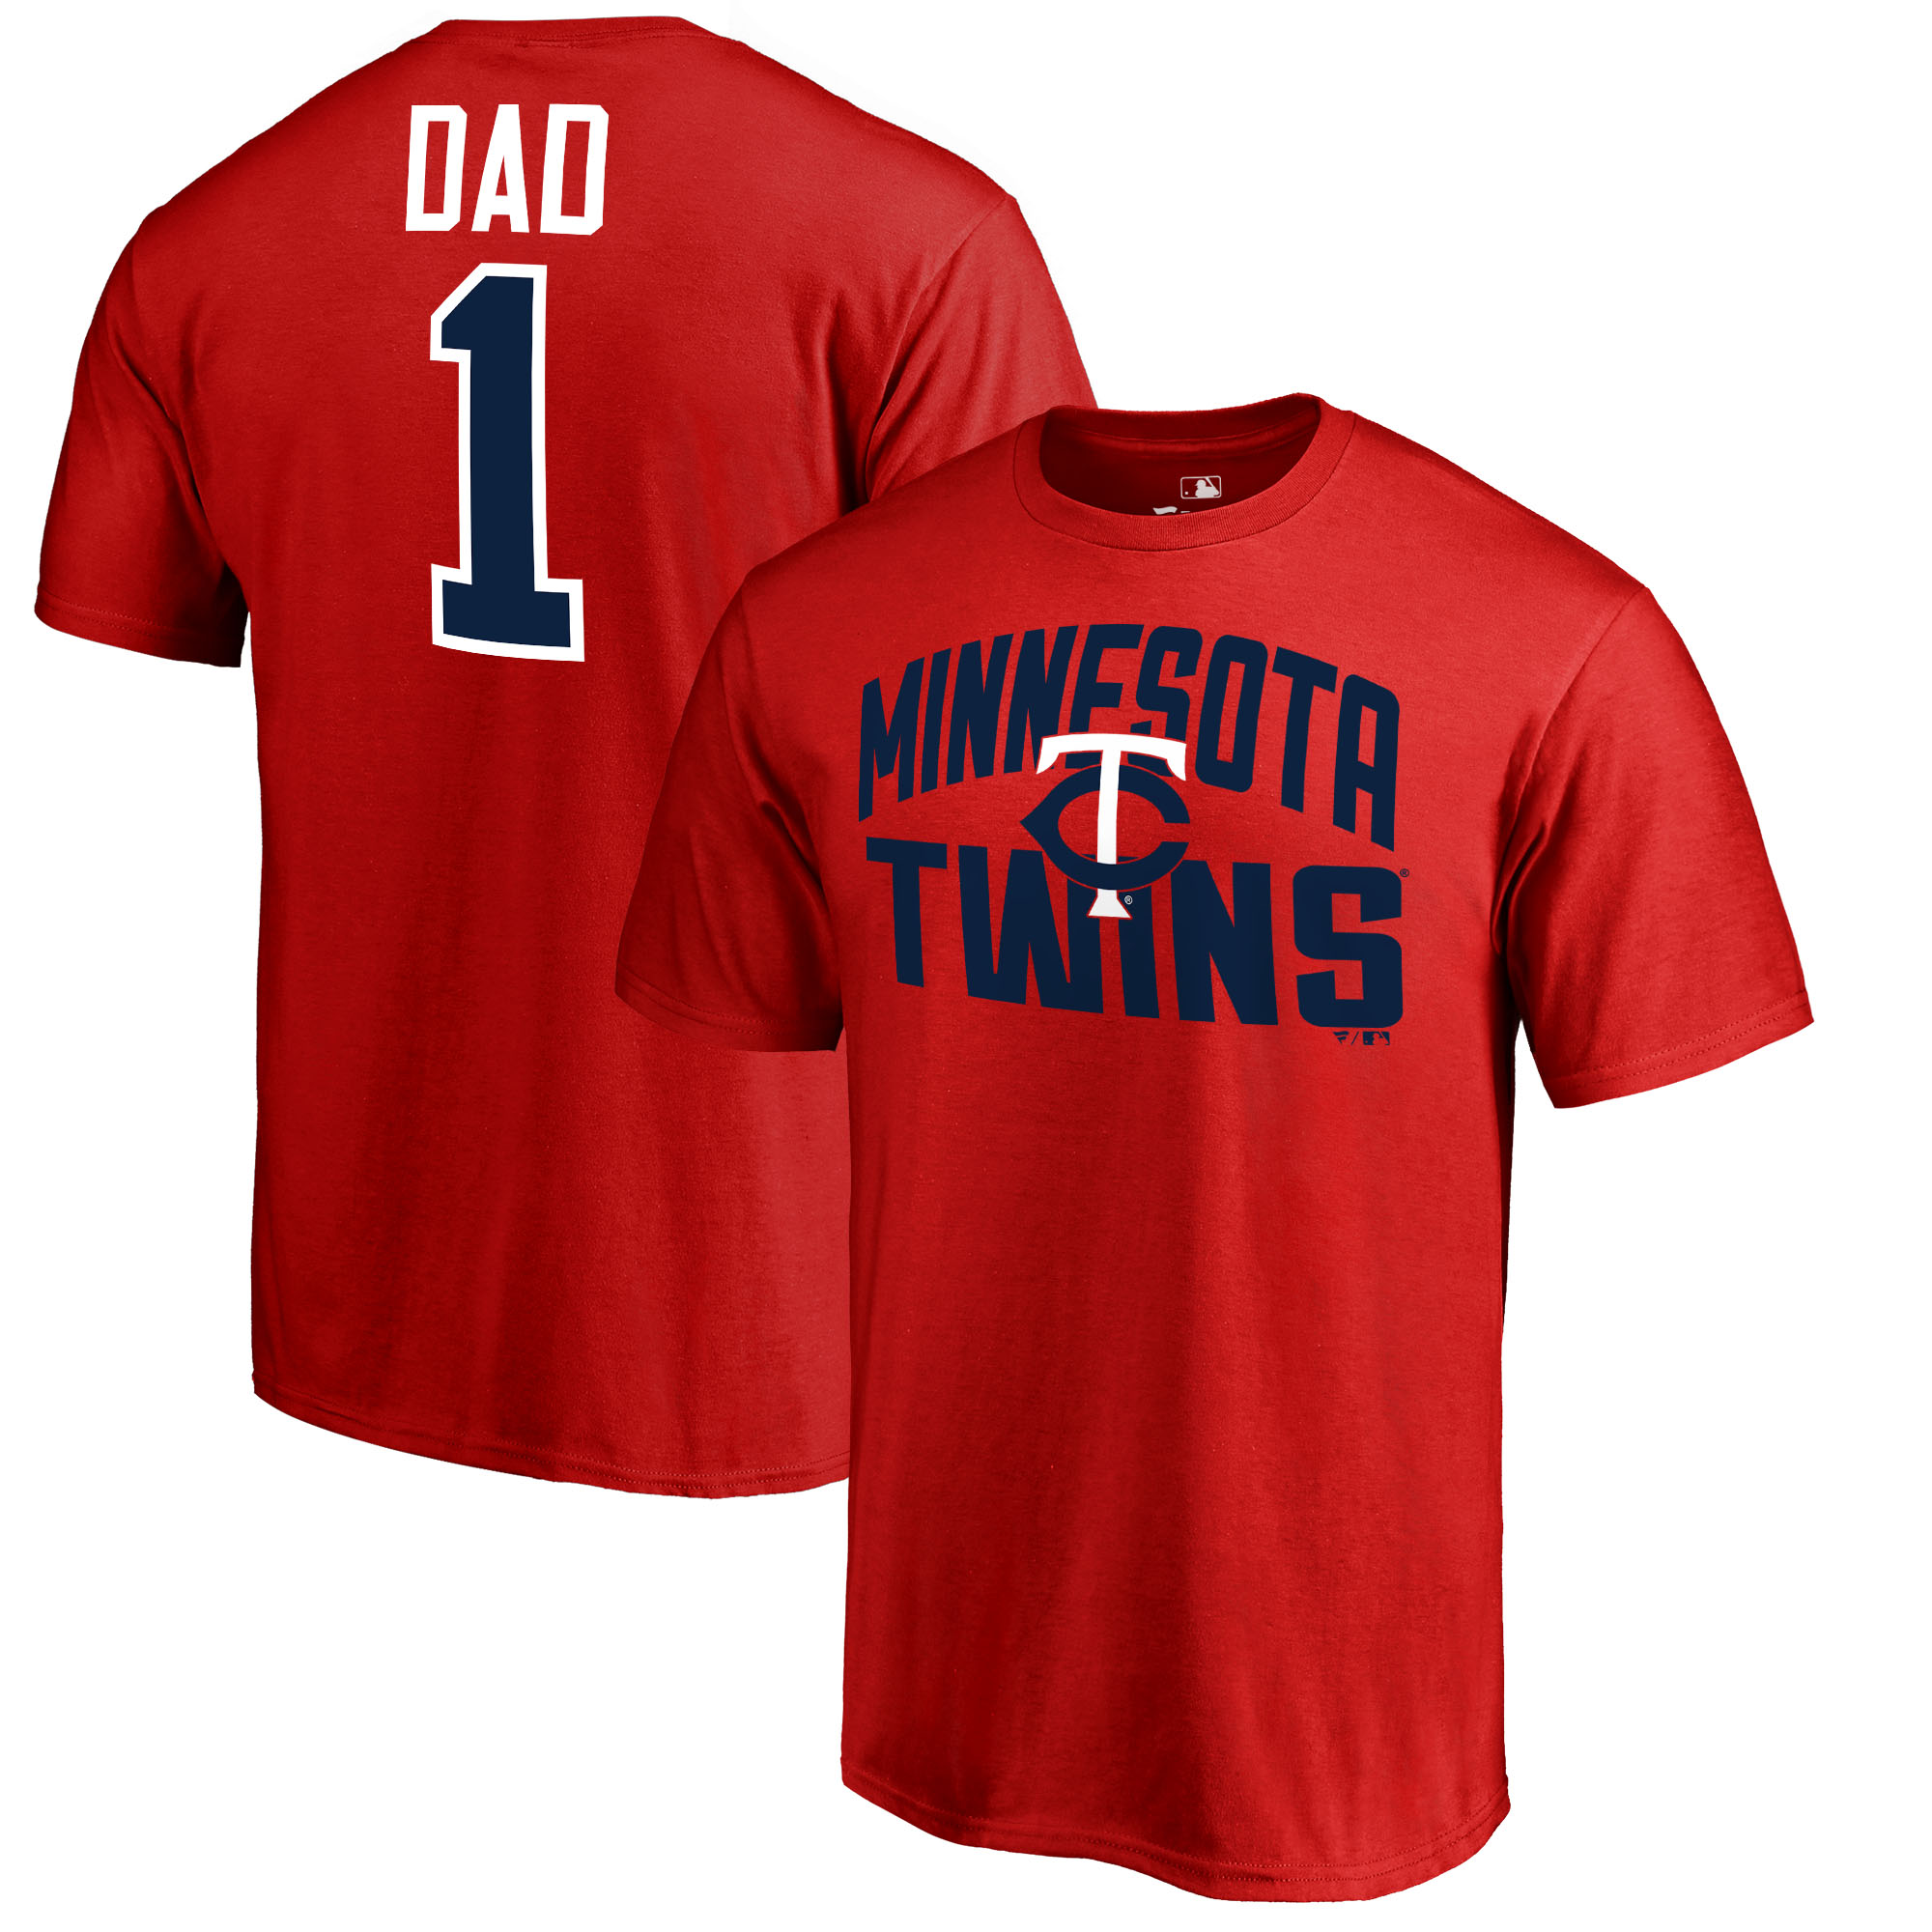 Minnesota Twins Fanatics Branded 2018 Father's Day Number 1 Dad T-Shirt - Red